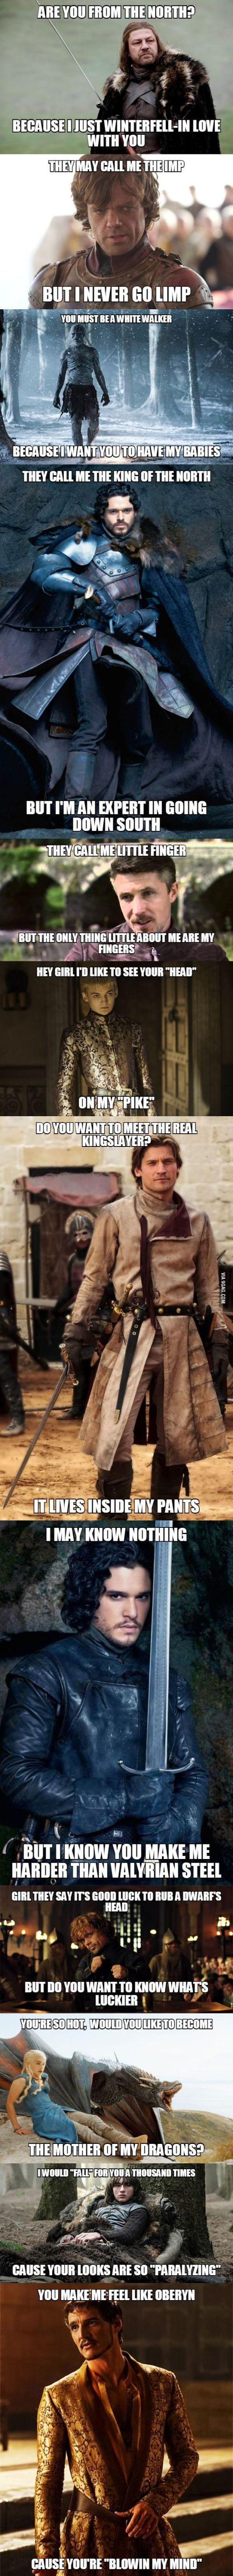 30 Game of thrones quotes #Famous